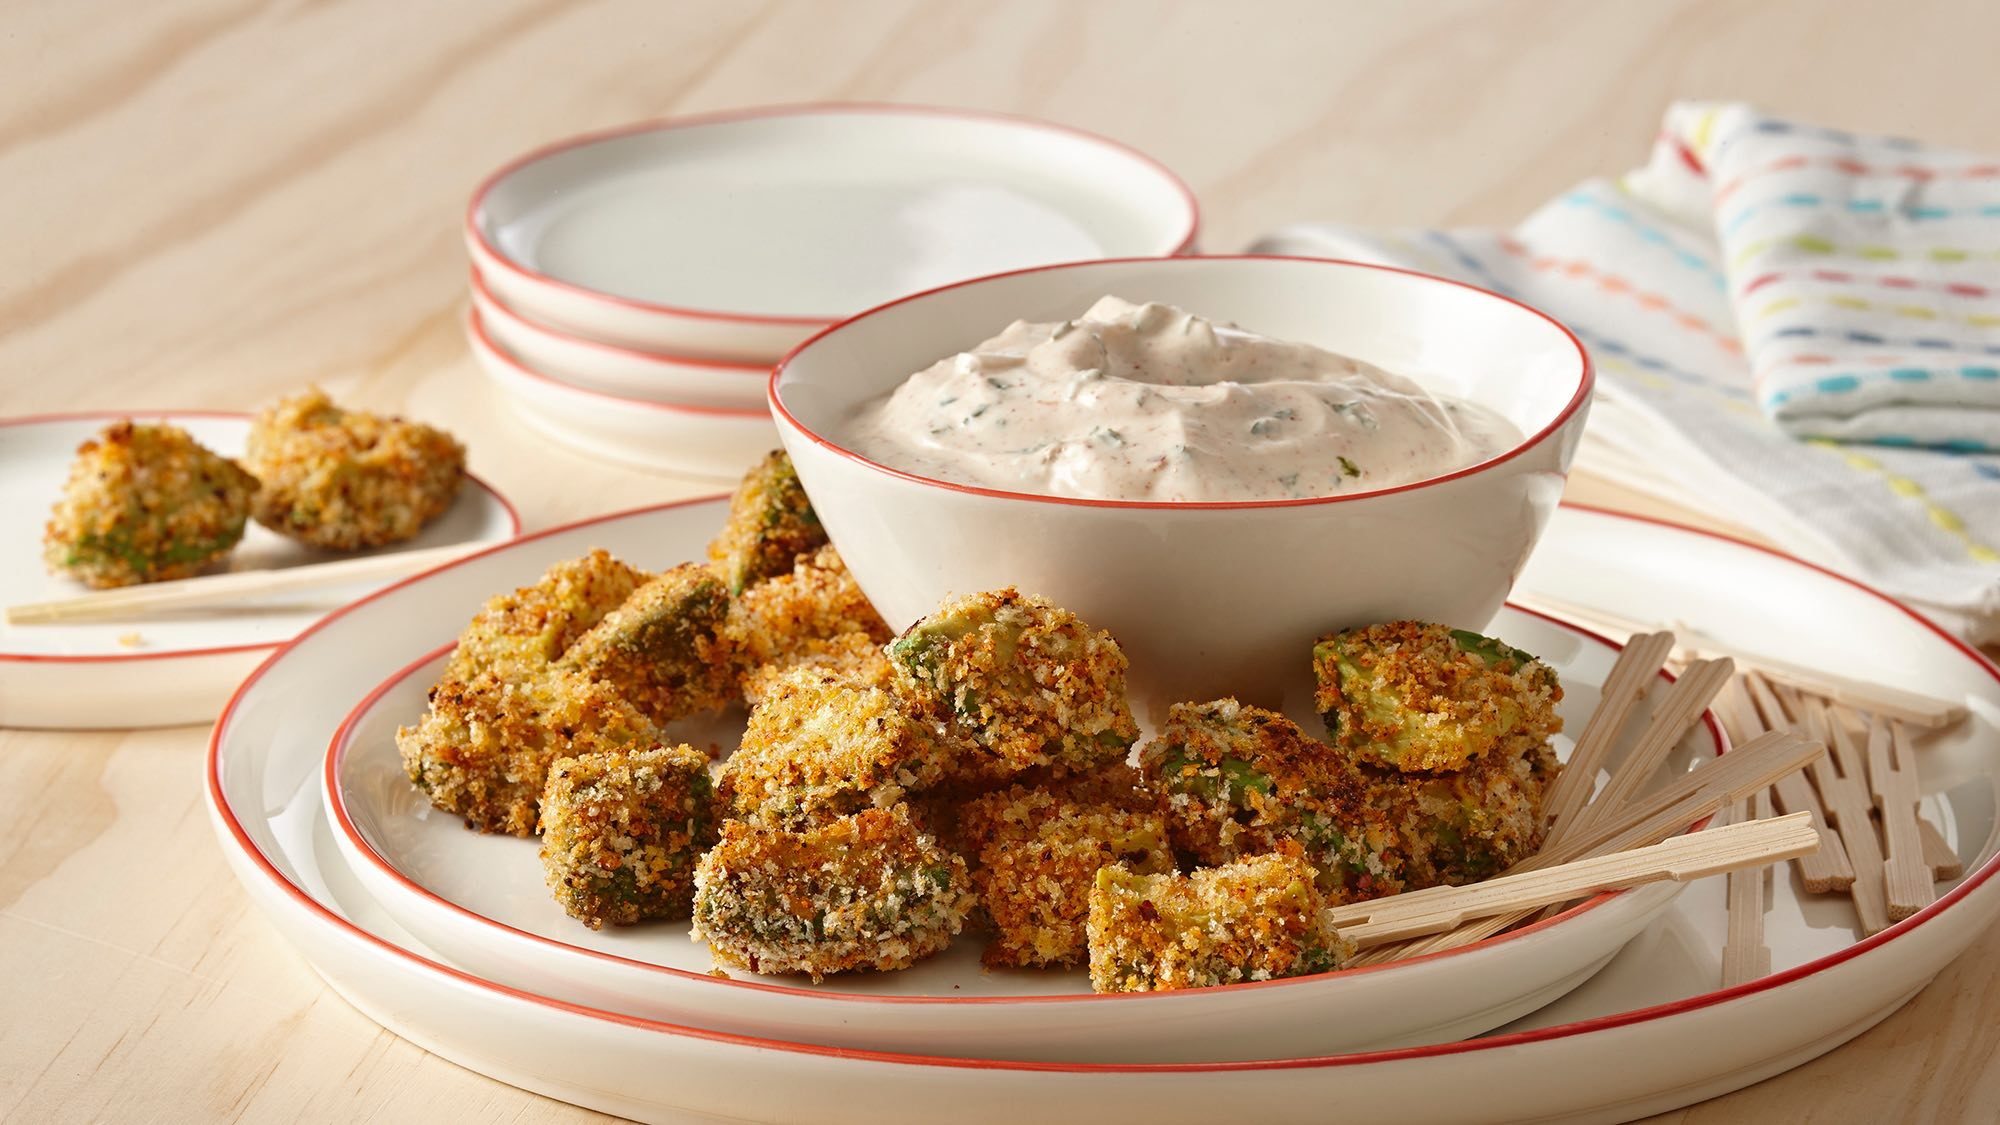 McCormick Avocado Bites with Yogurt Dipping Sauce